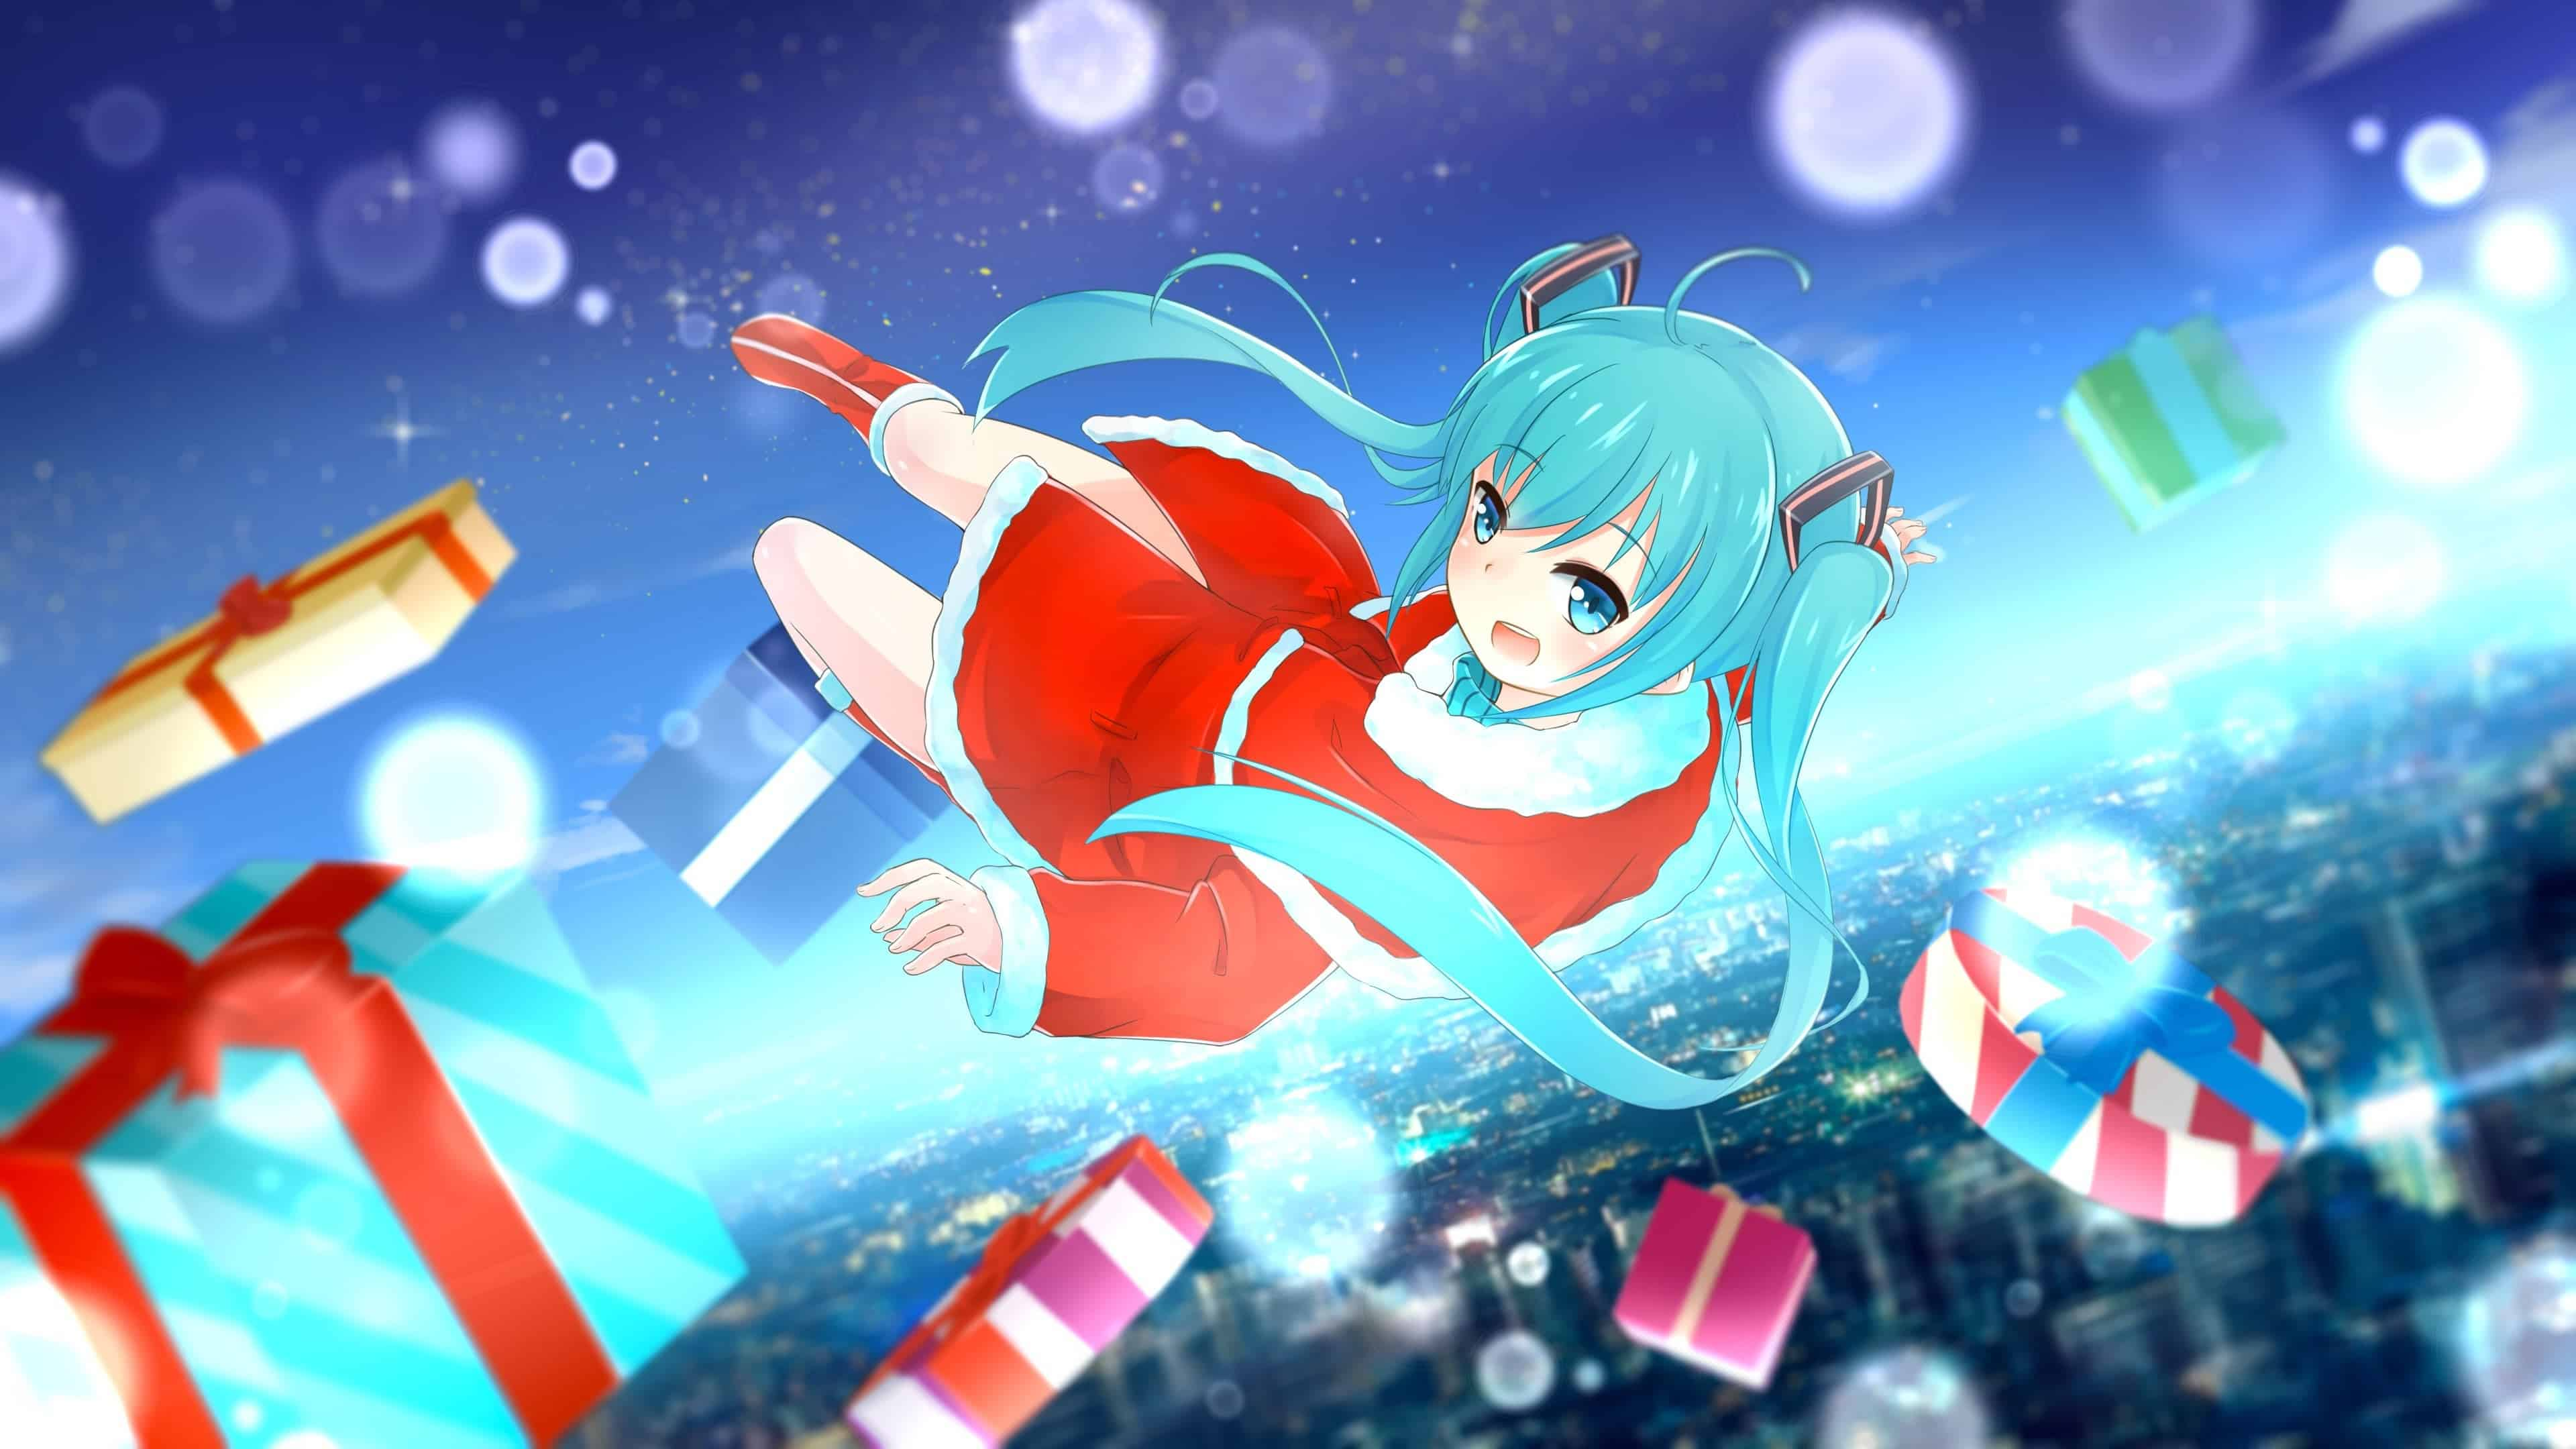 Christmas Anime.Miku Christmas Anime Wallpapers Top Free Miku Christmas